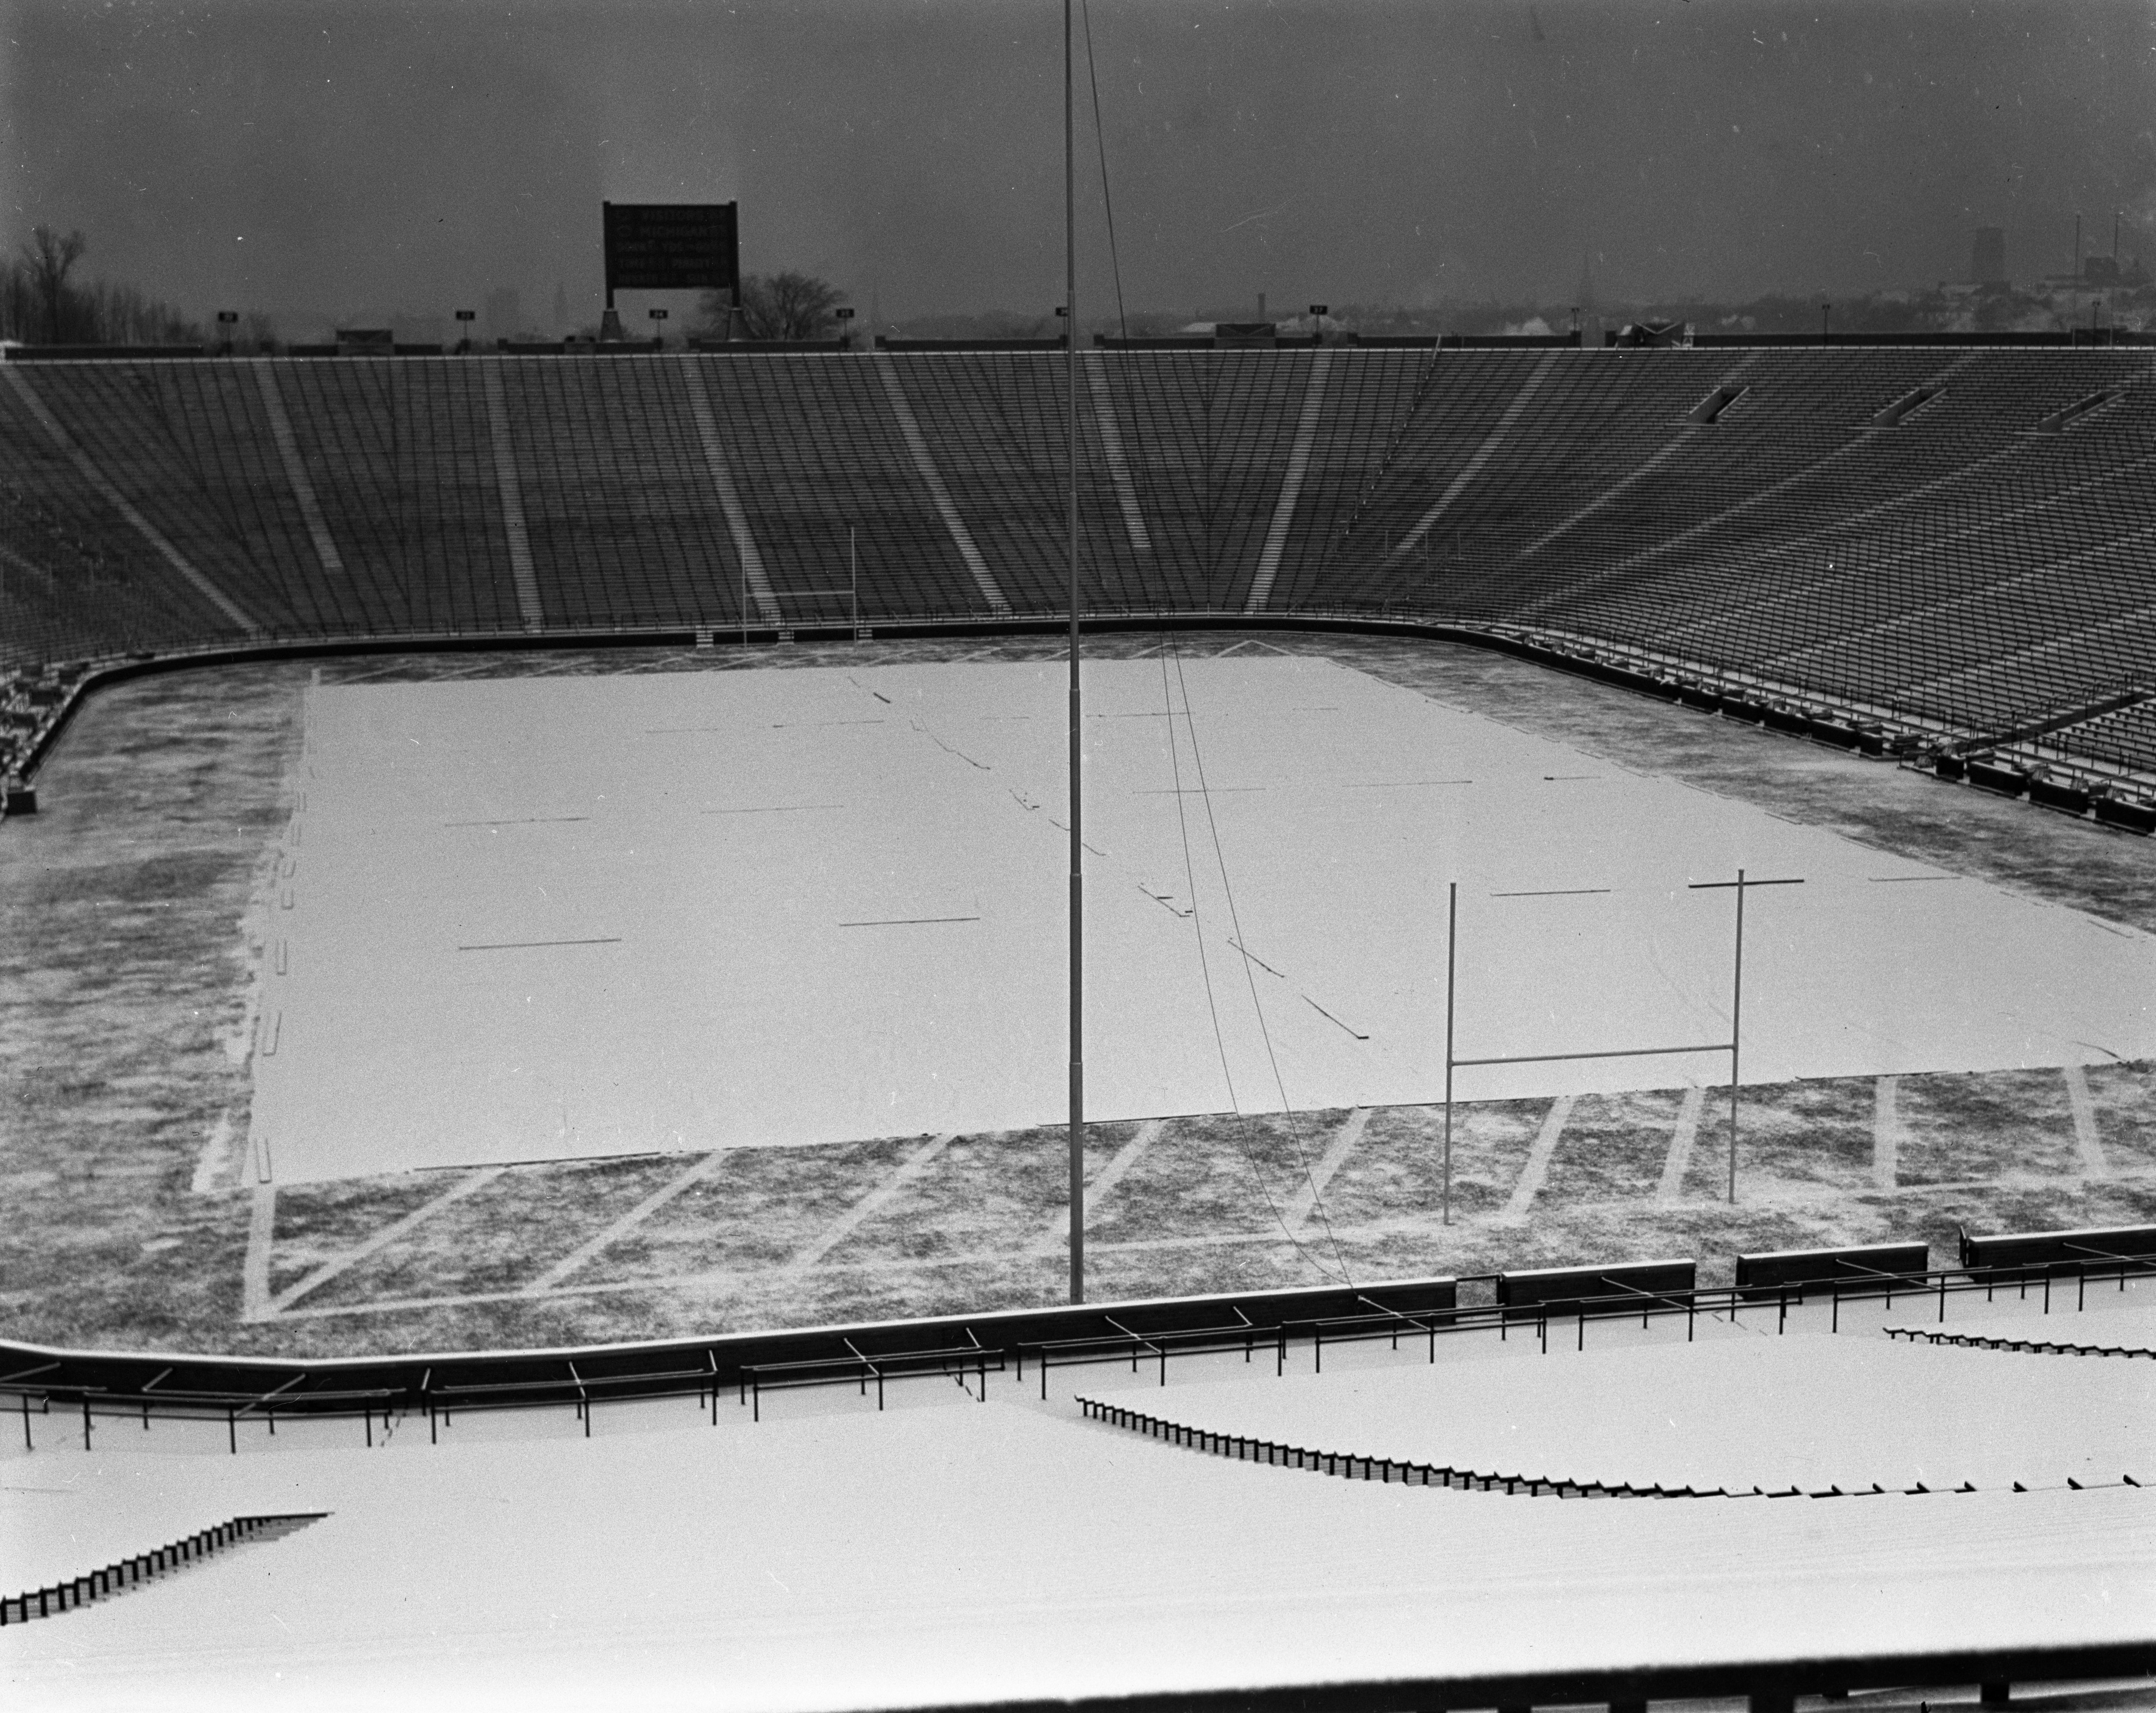 First Snow, Michigan Stadium, November 1937 image